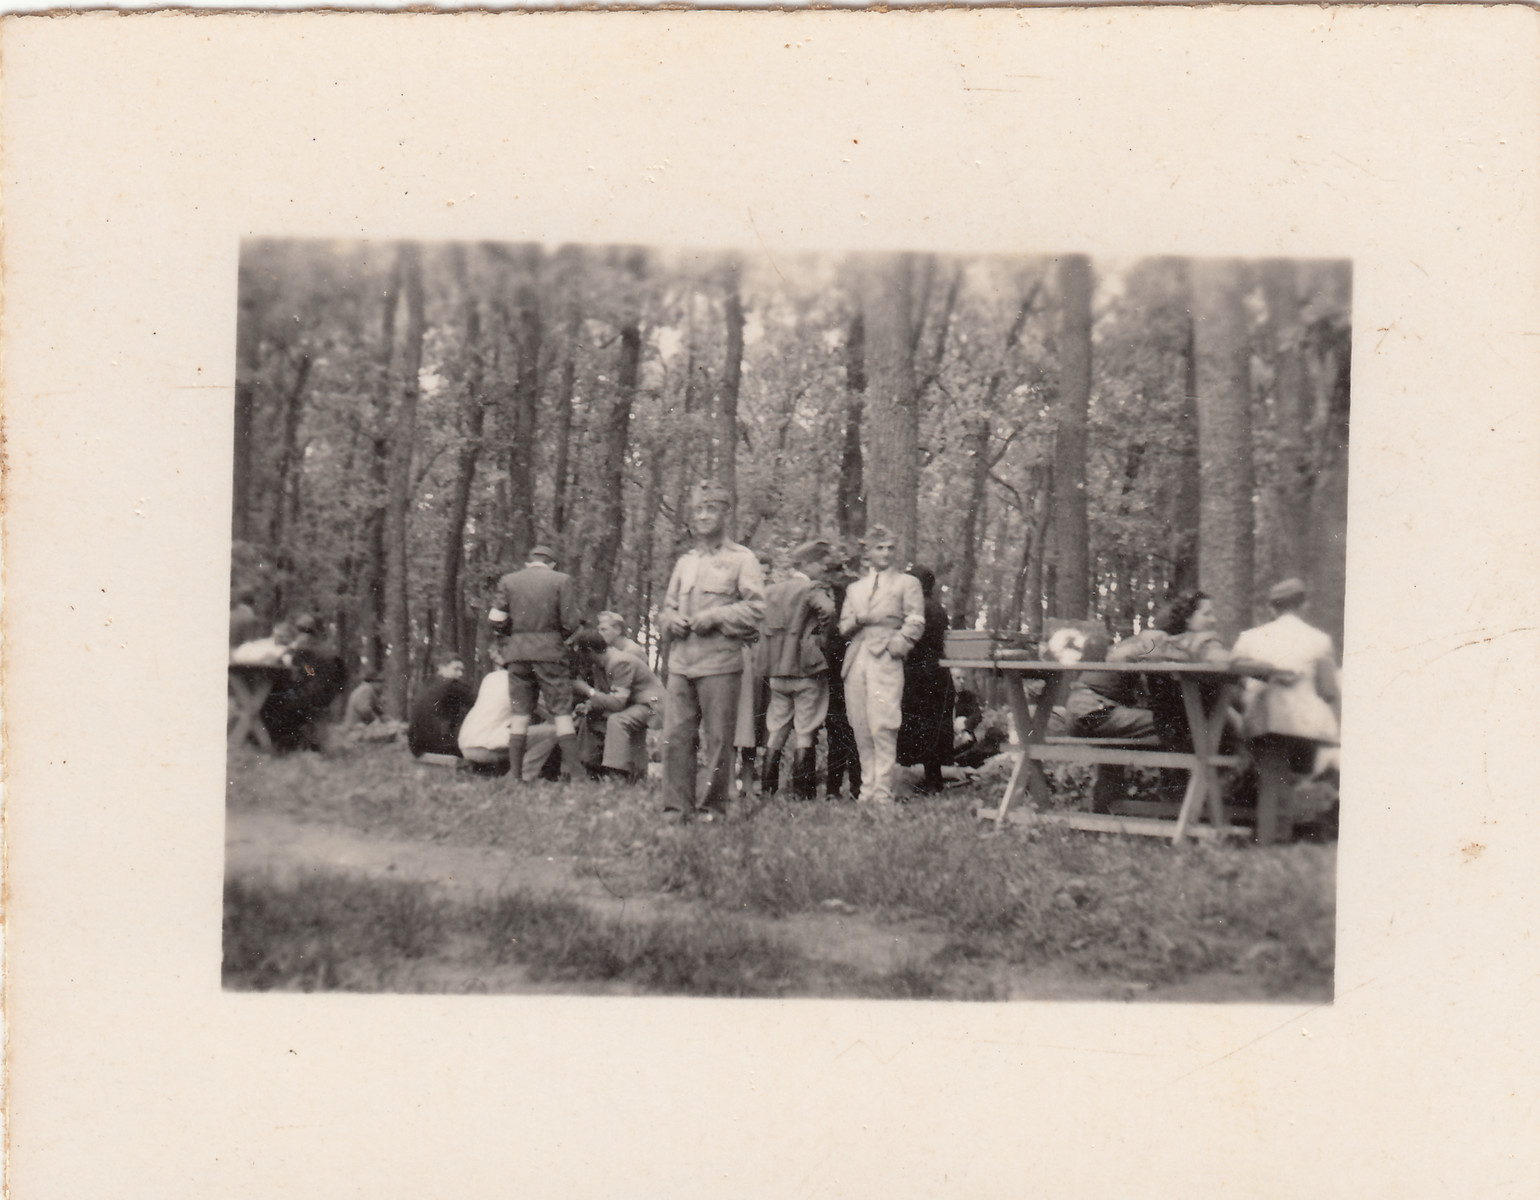 Members of a Hungarin labor battalion stop for lunch at a picnic table.  They are joined by a group of visitors.